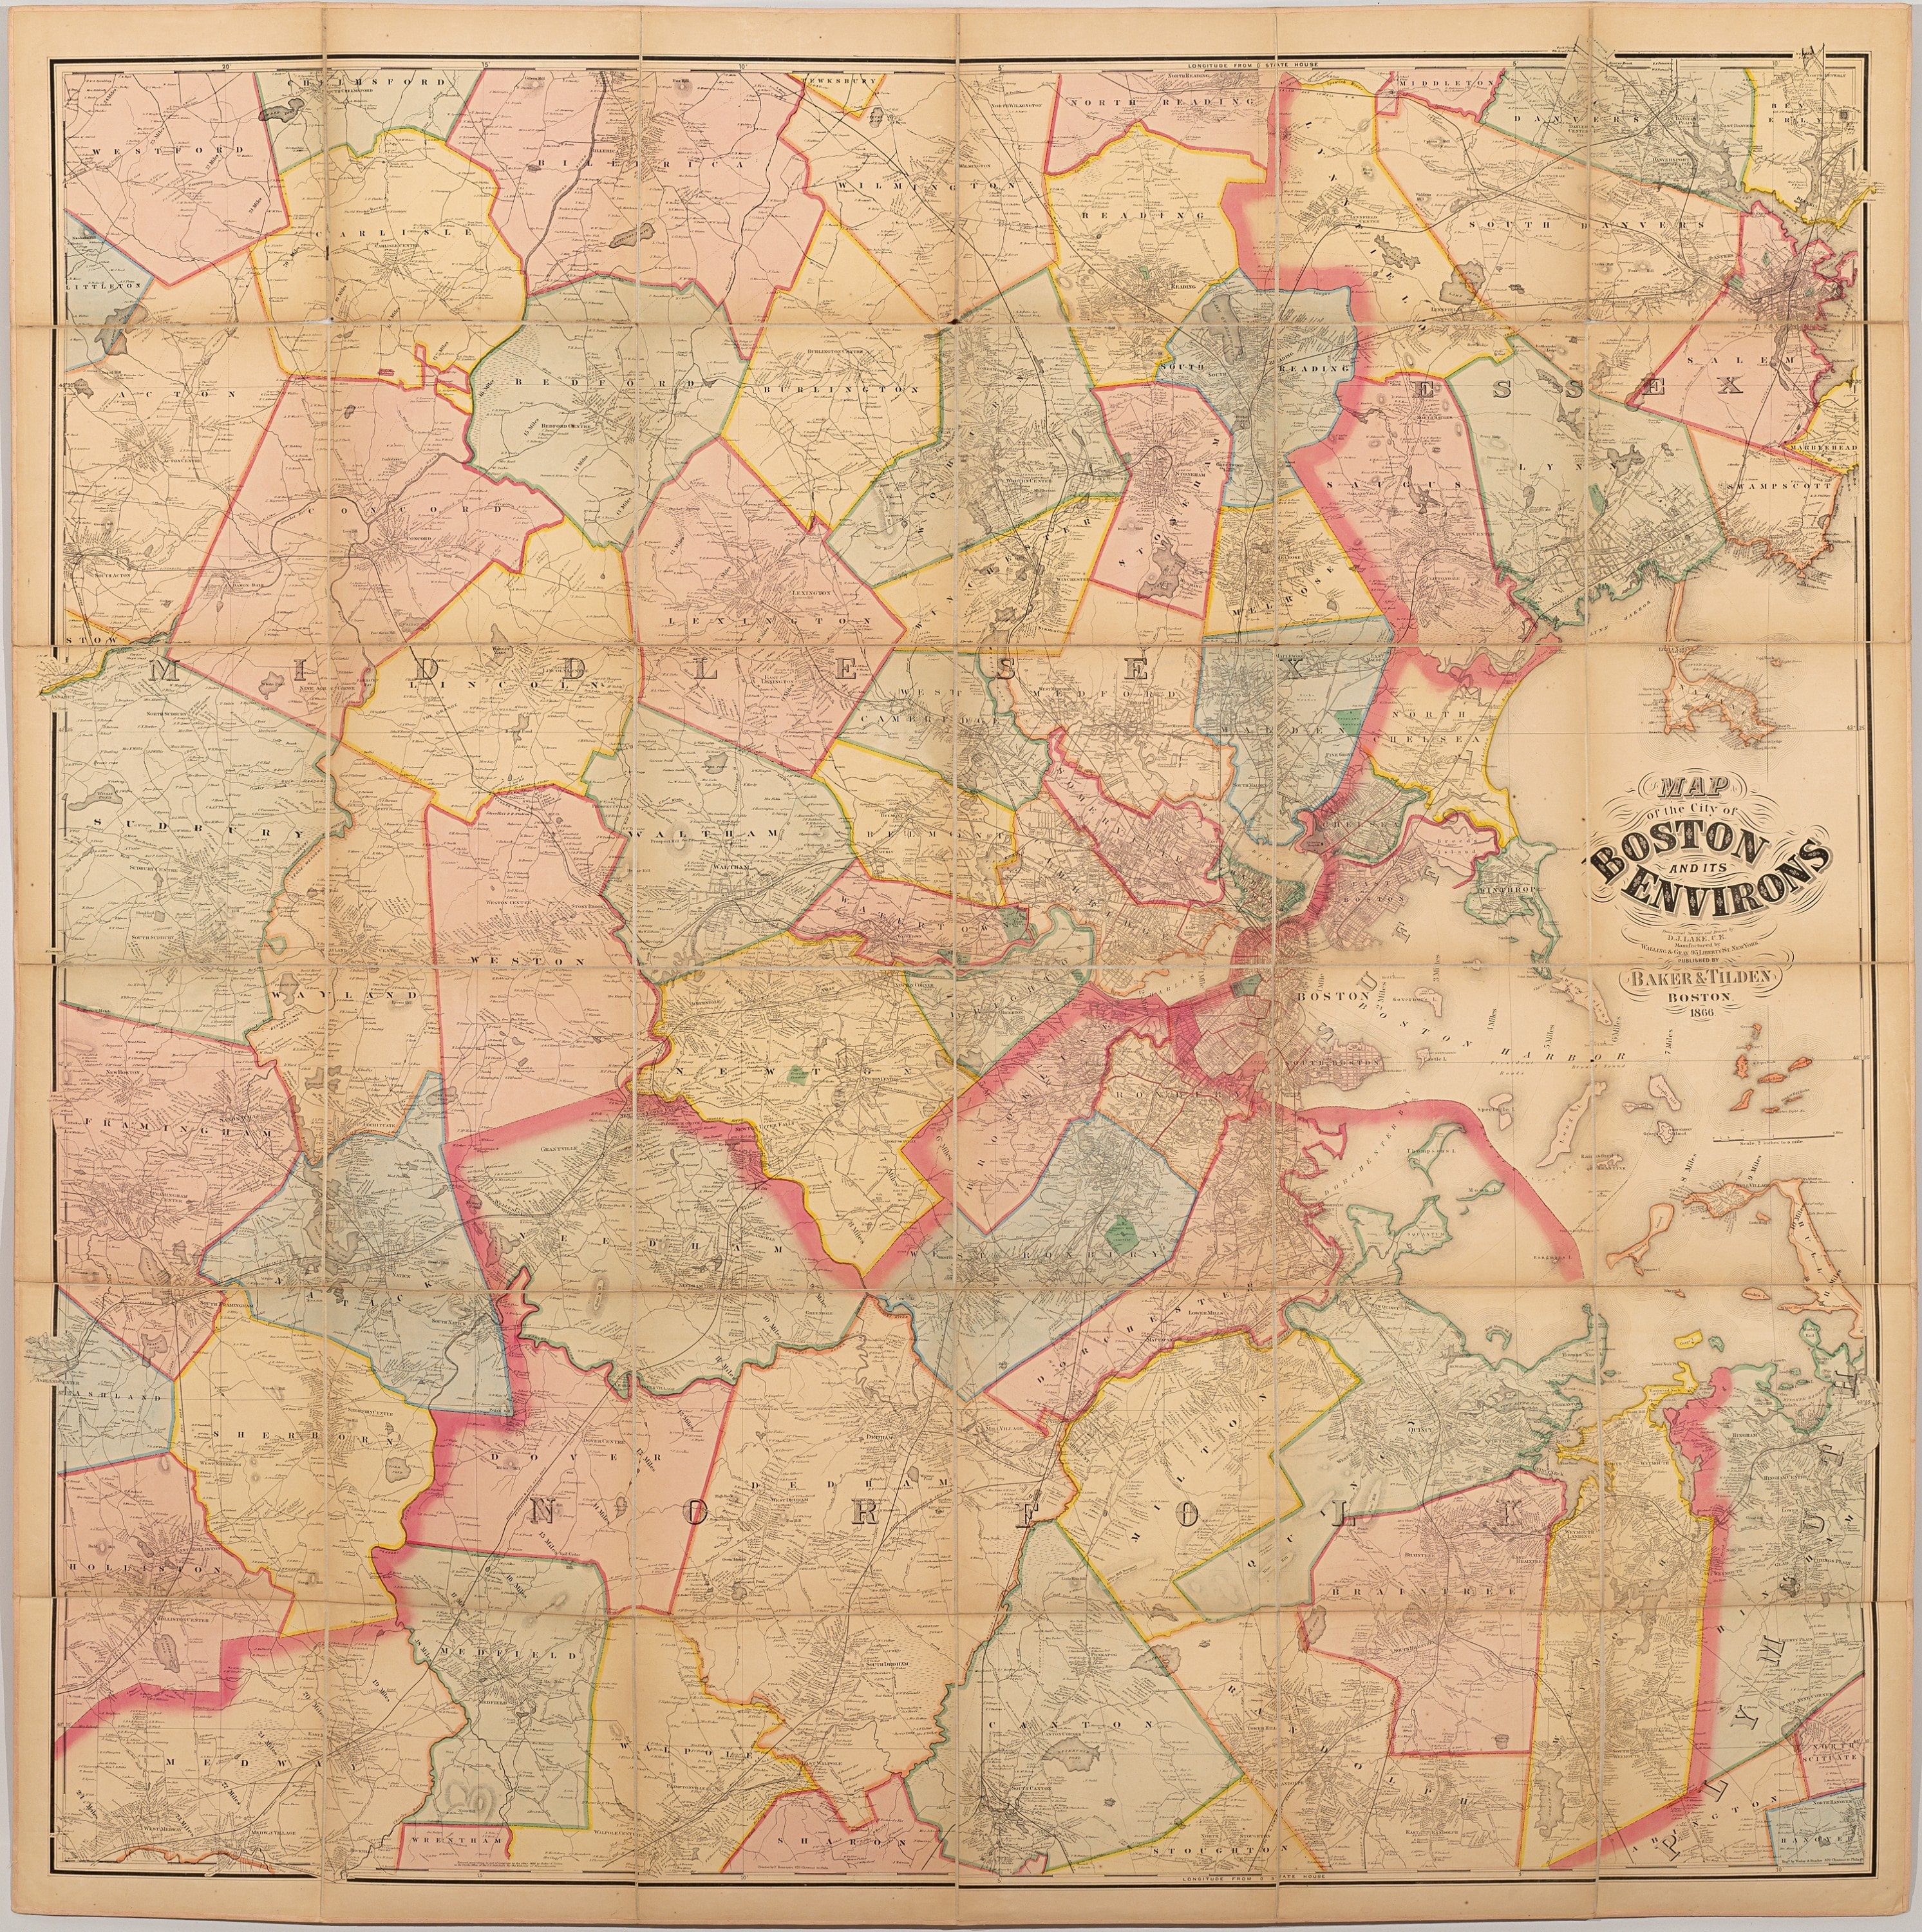 Henry F Walling map of the Greater Boston area Rare Antique Maps